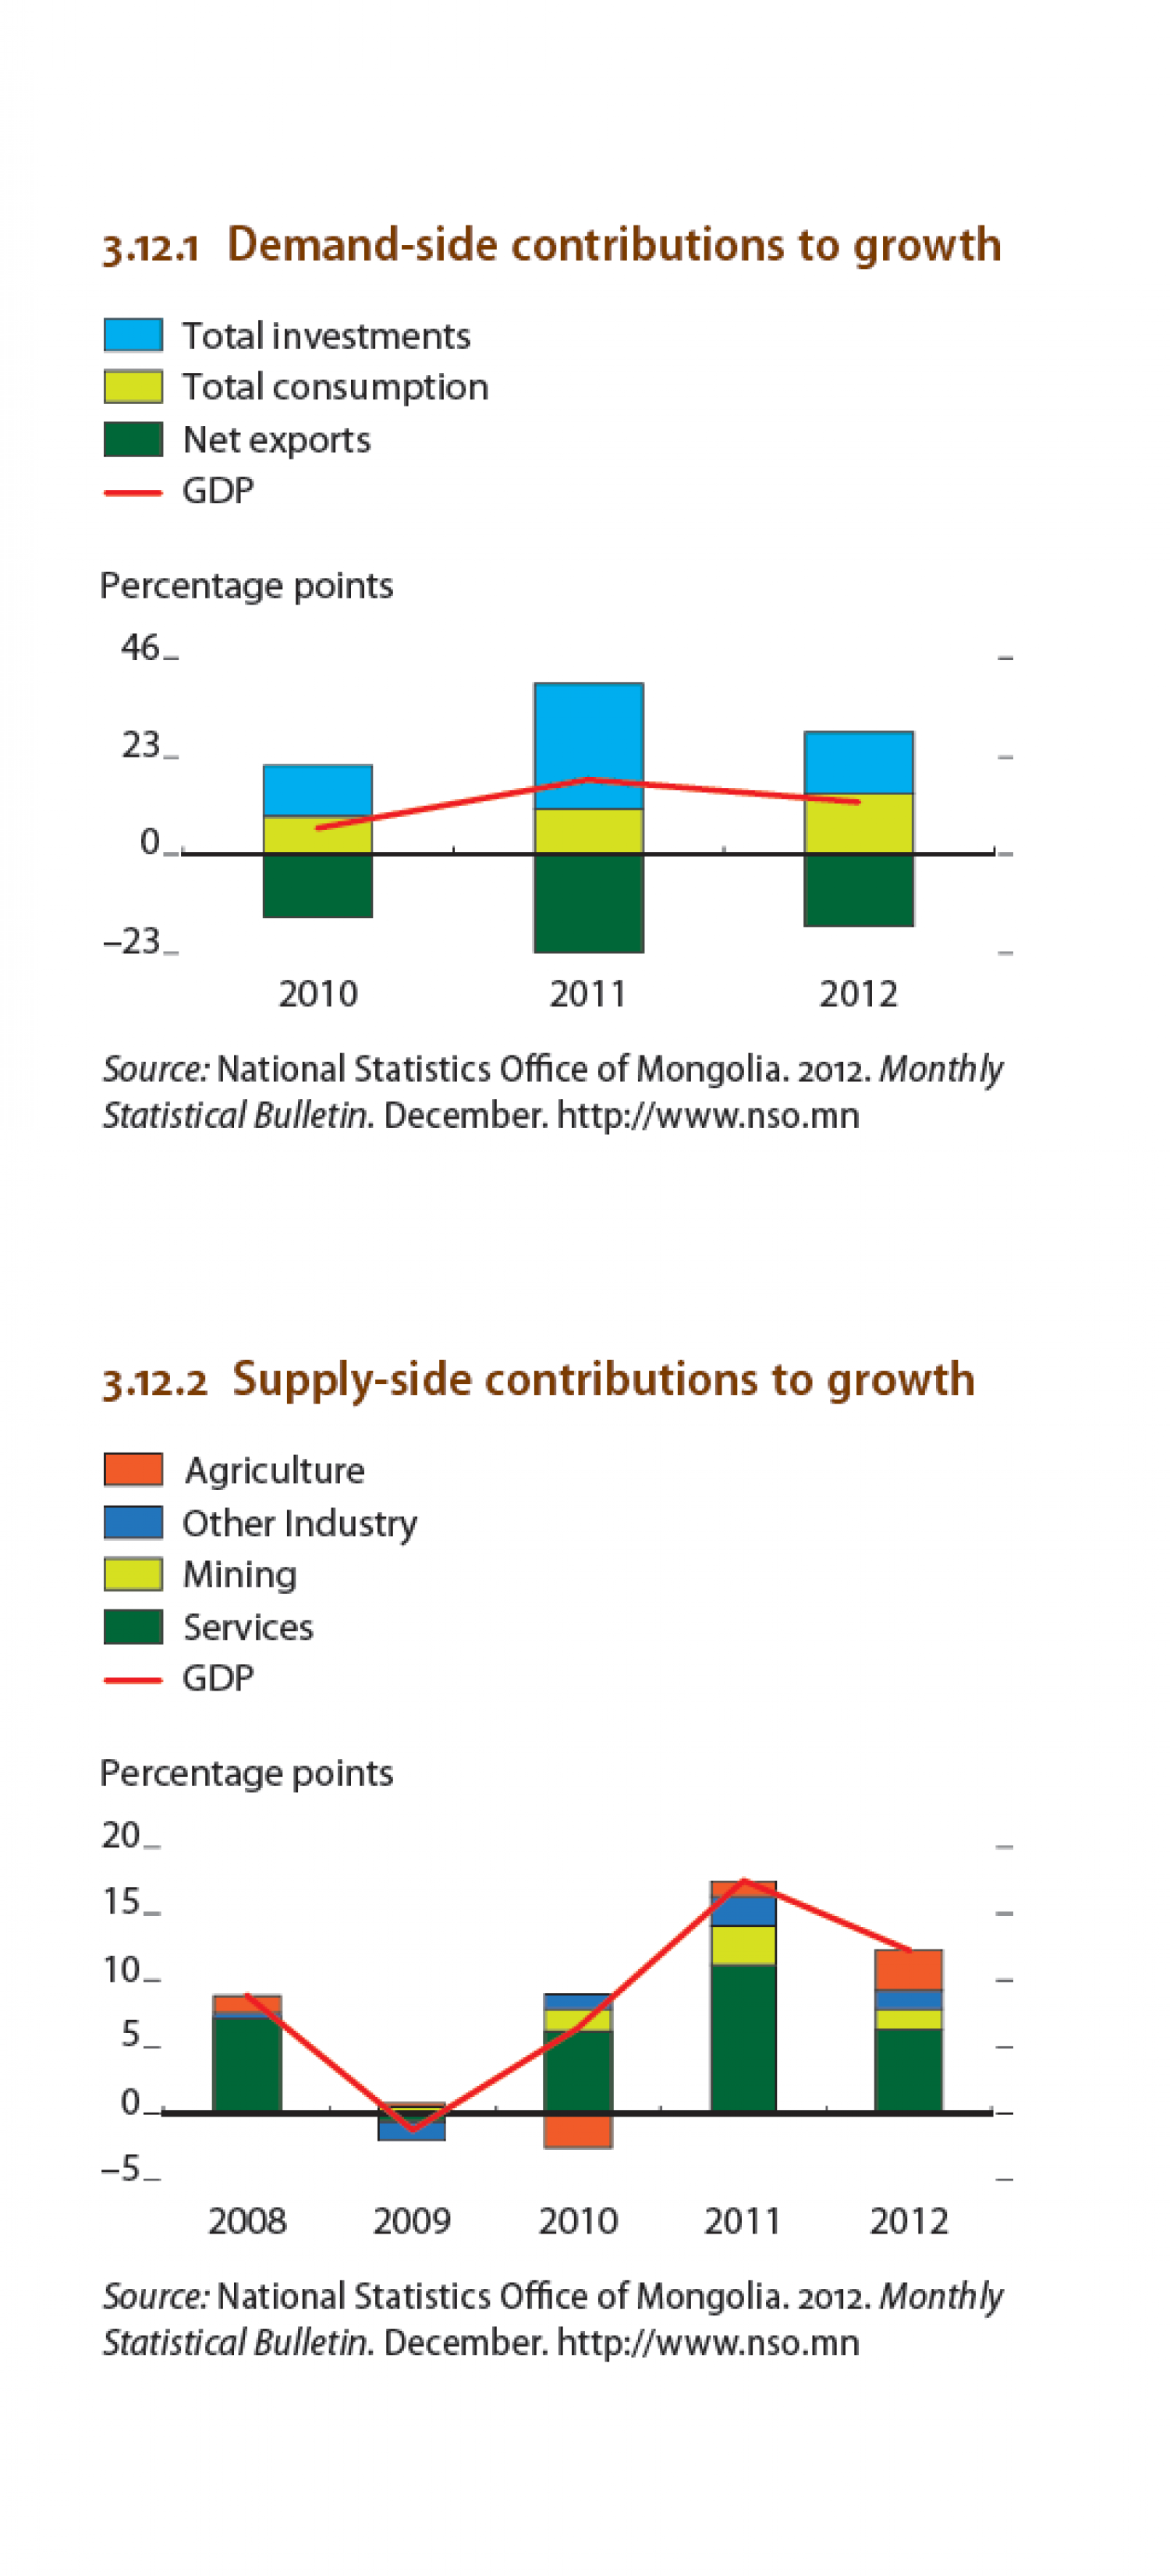 Mongolia : Demand-side contributions to growth Infographic